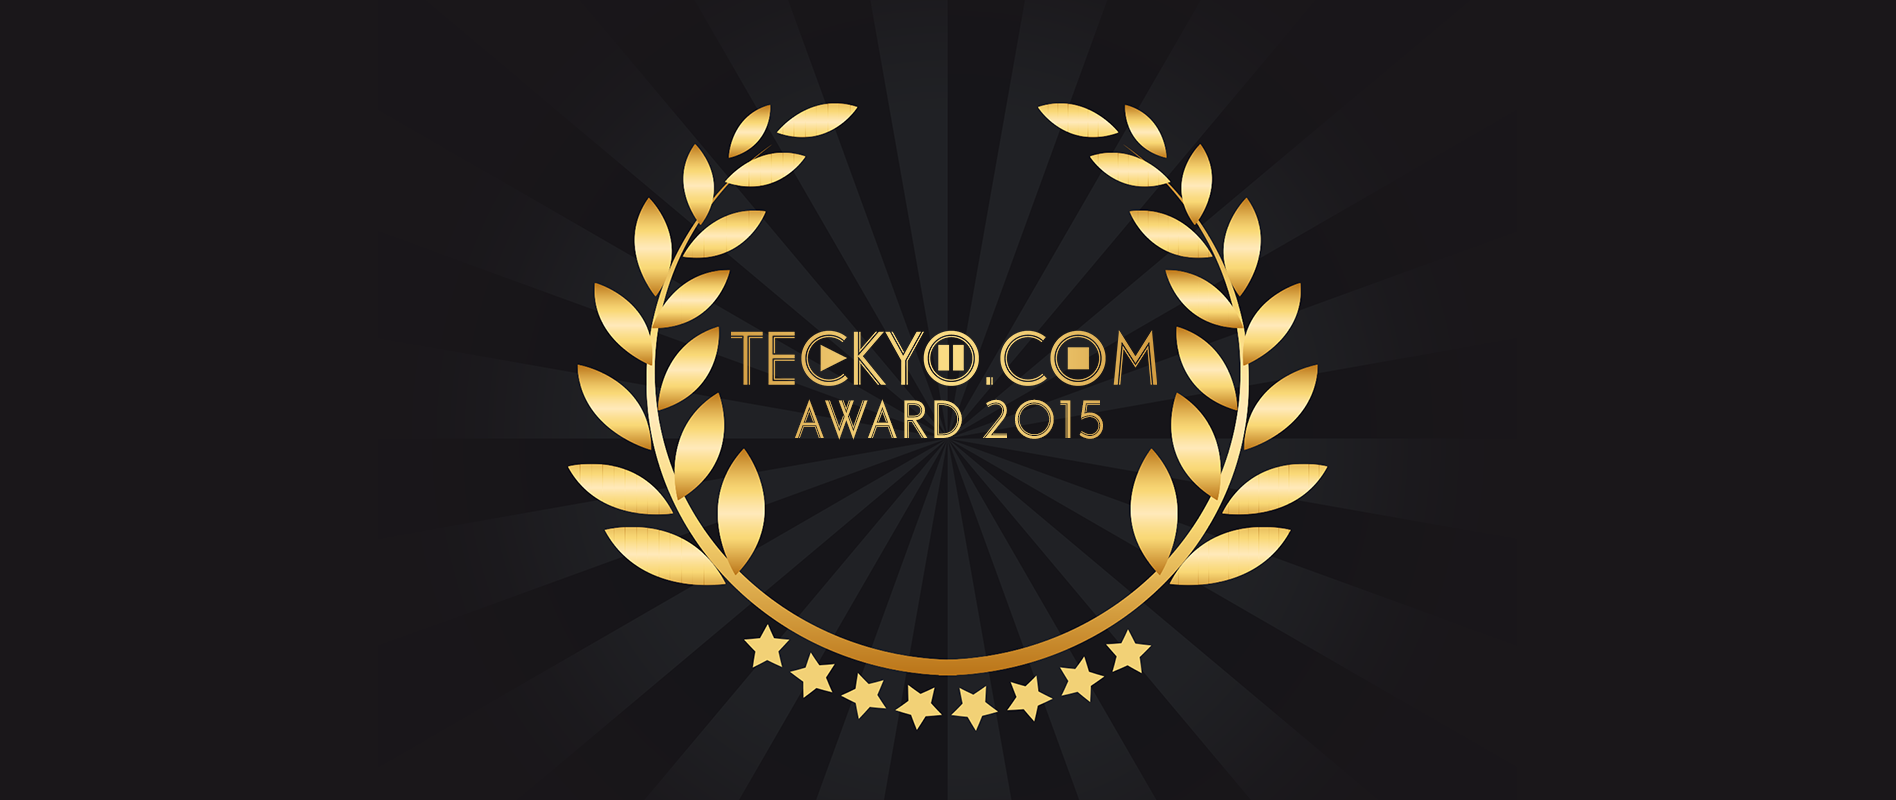 Teckyo Awards 2015